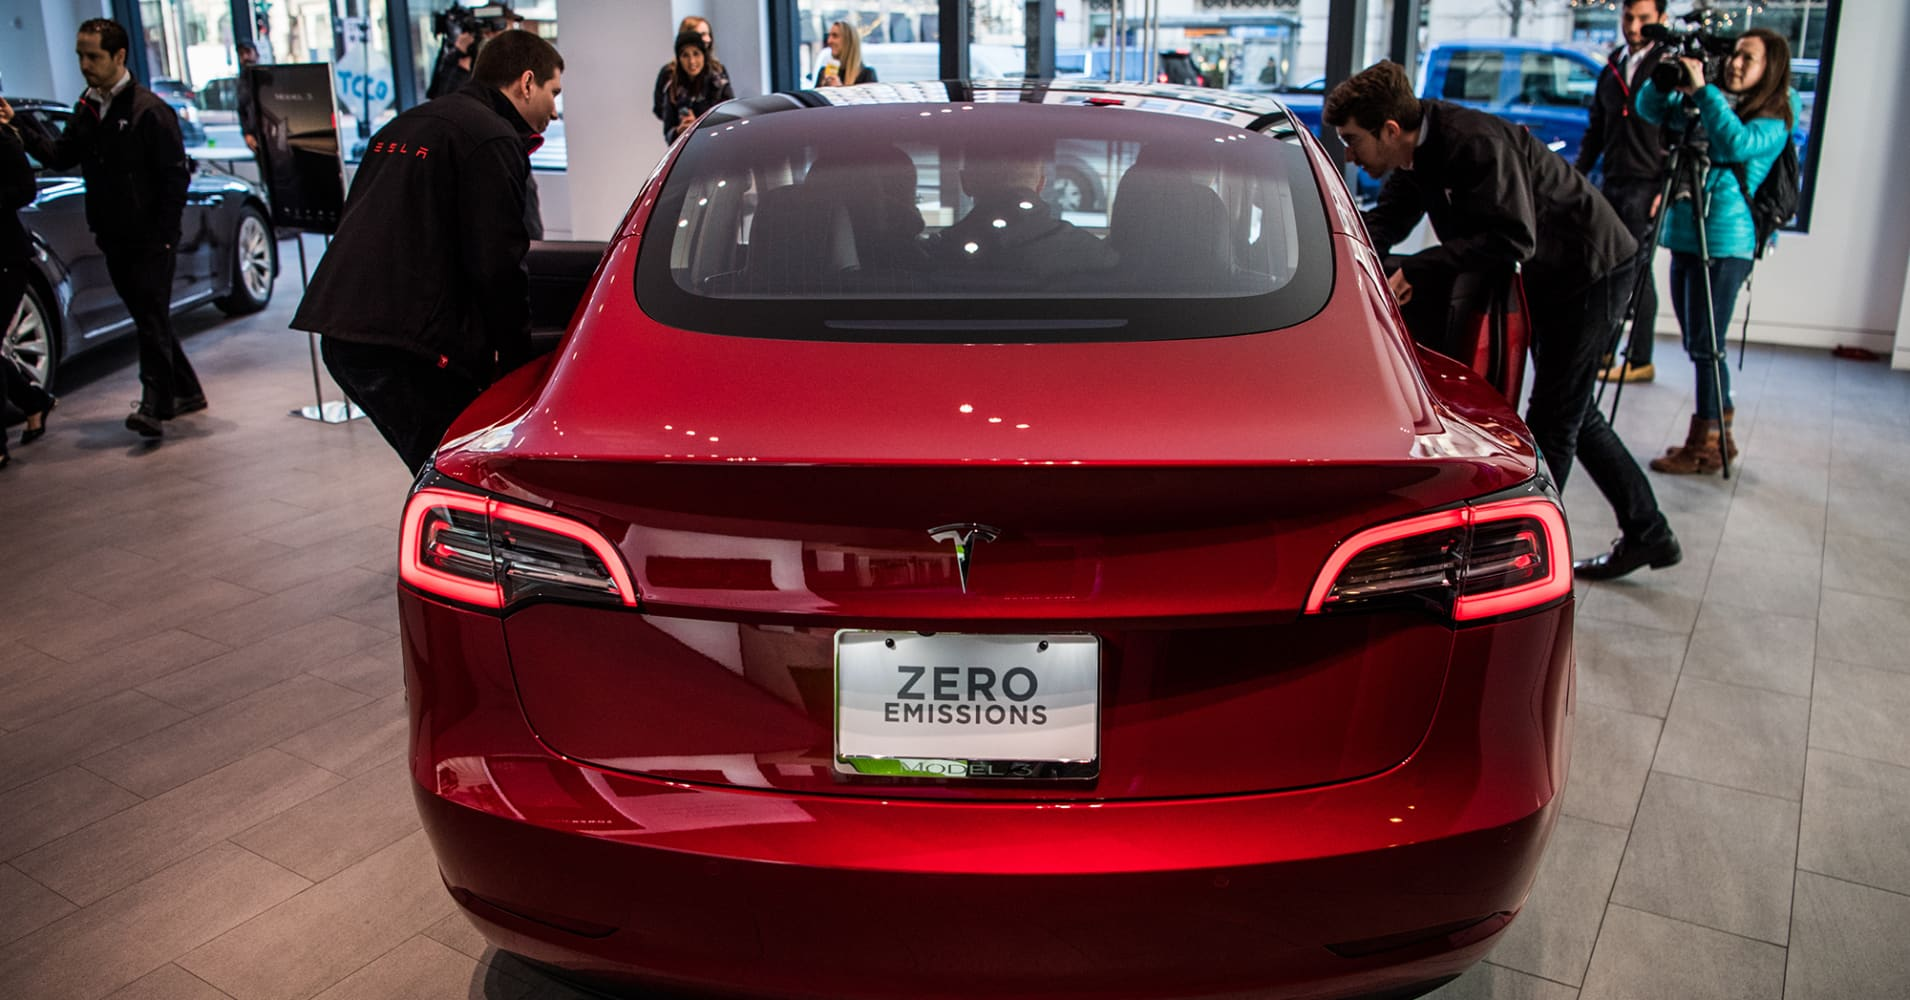 cnbc.com - Lora Kolodny - Tesla customers describe maddening problems with returns and refunds